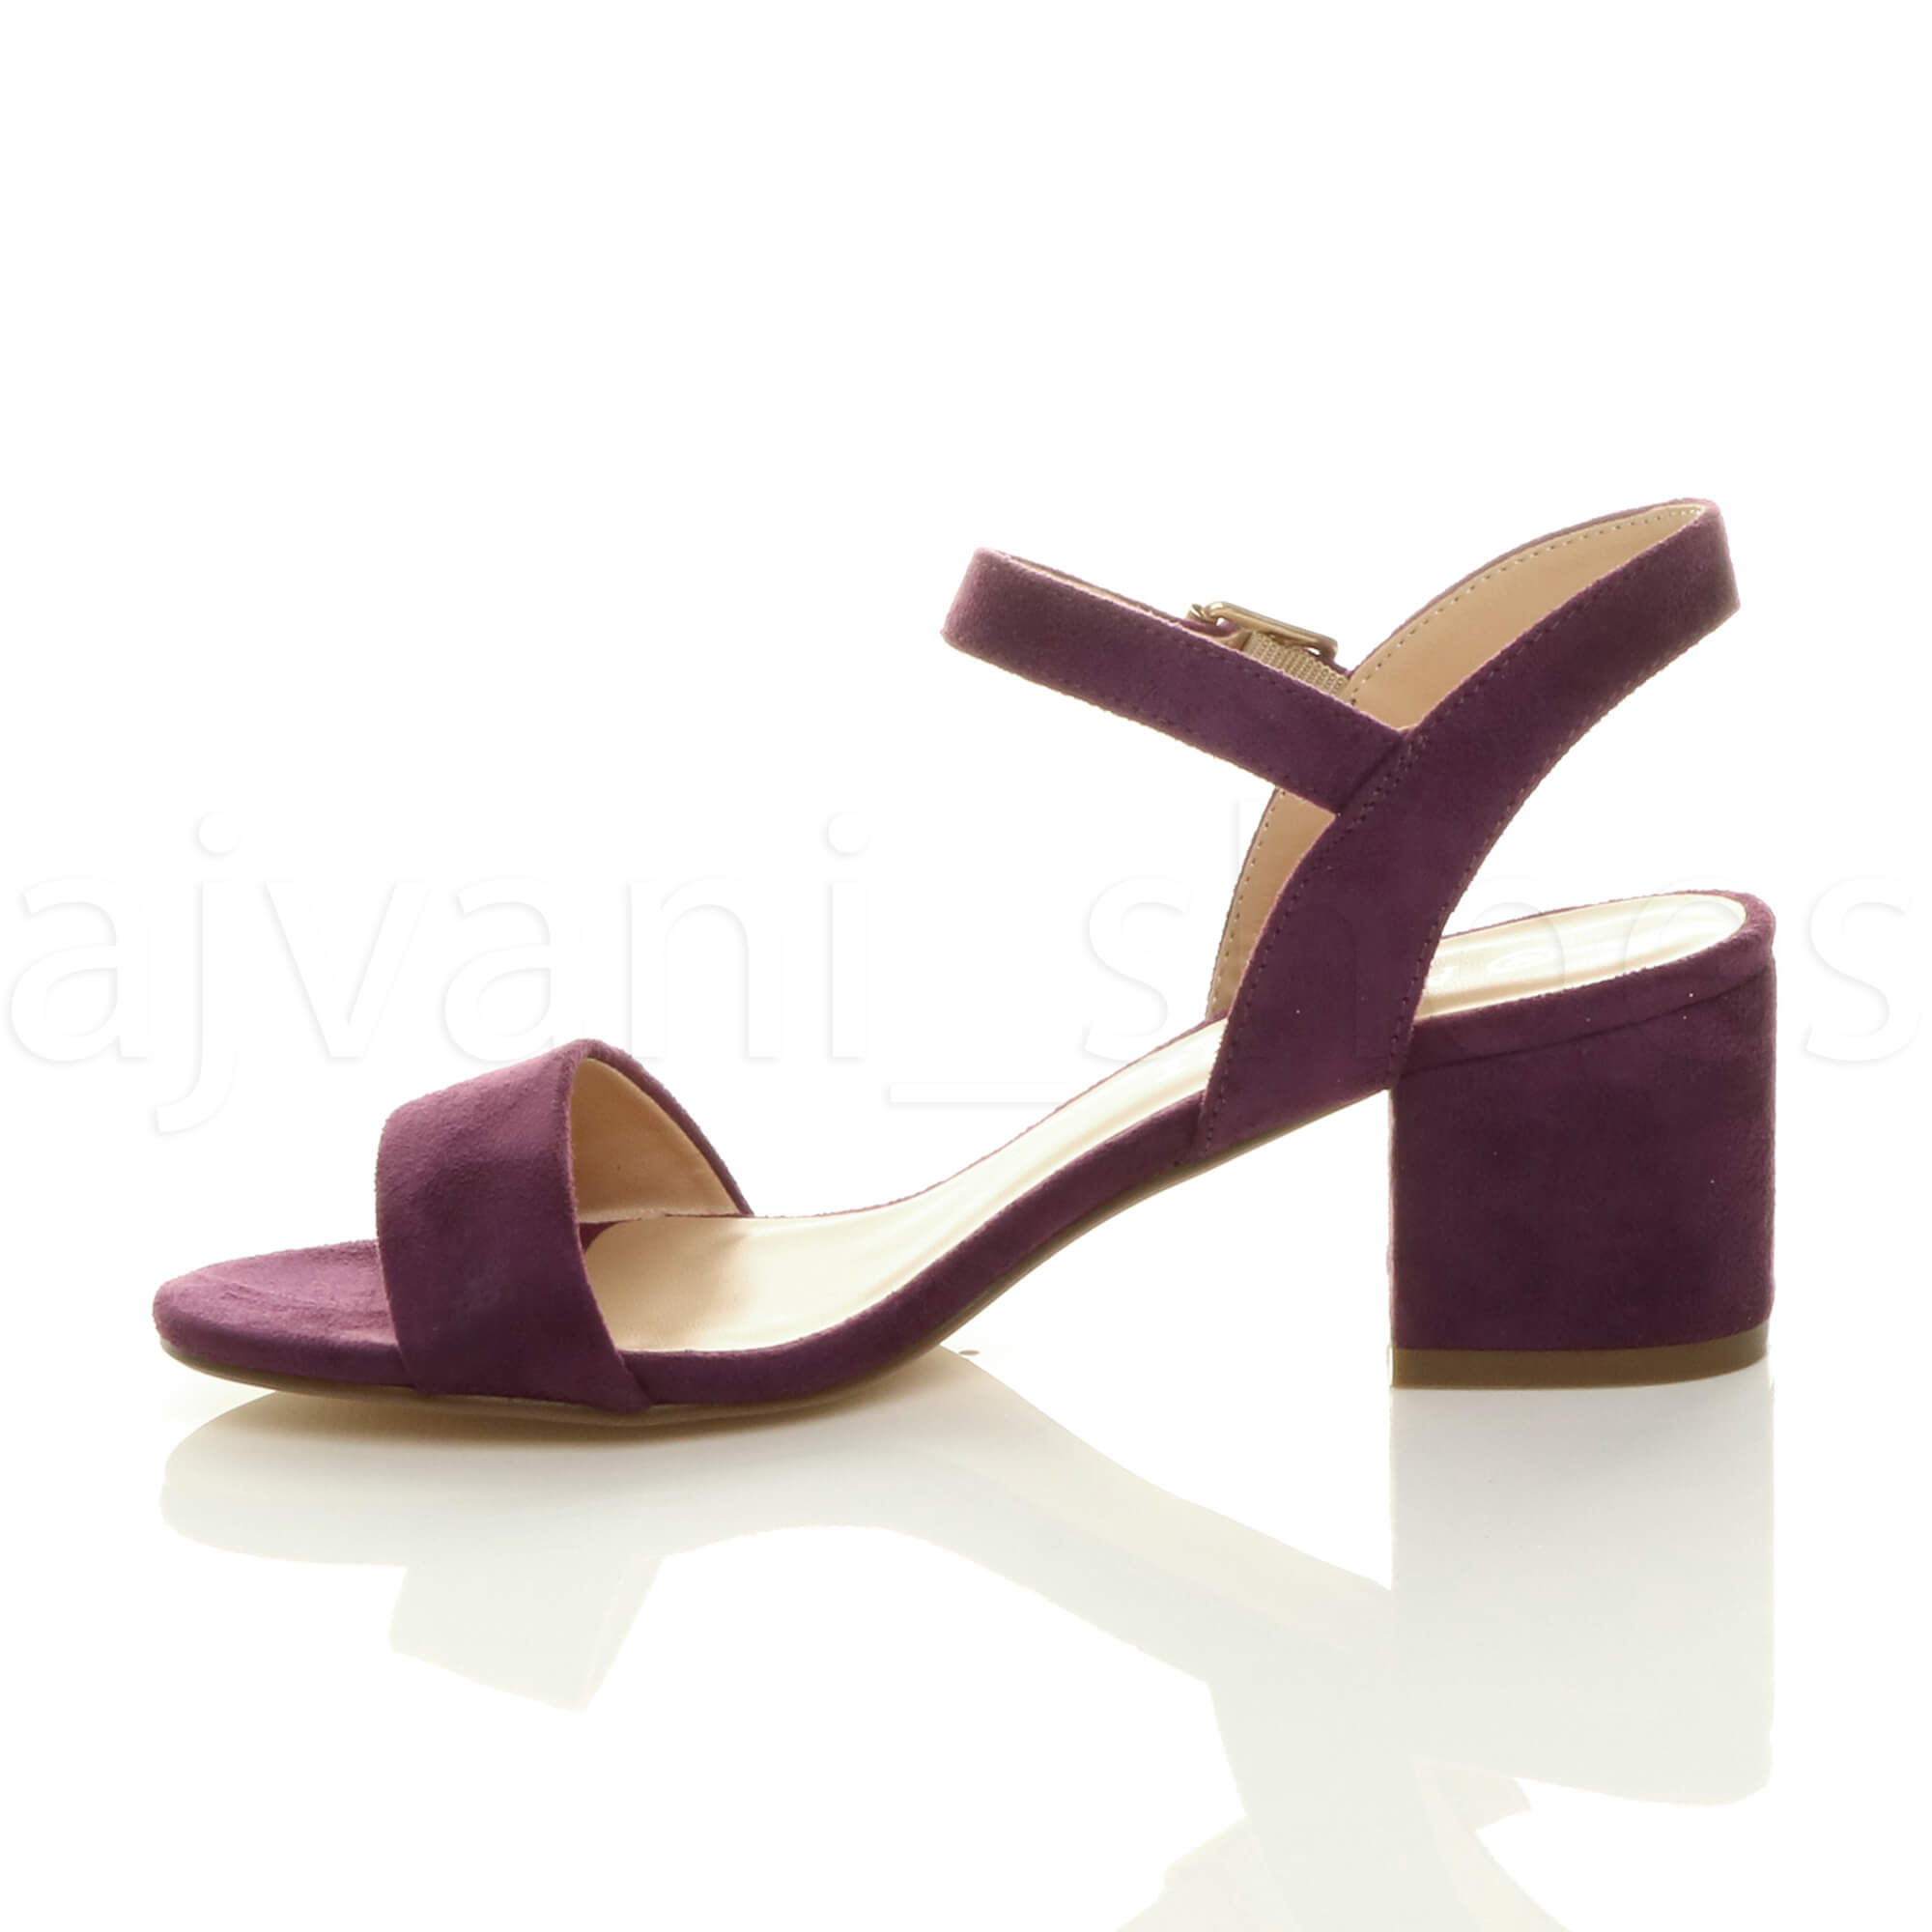 WOMENS-LADIES-MID-LOW-BLOCK-HEEL-PEEP-TOE-ANKLE-STRAP-STRAPPY-PARTY-SANDALS-SIZE thumbnail 100